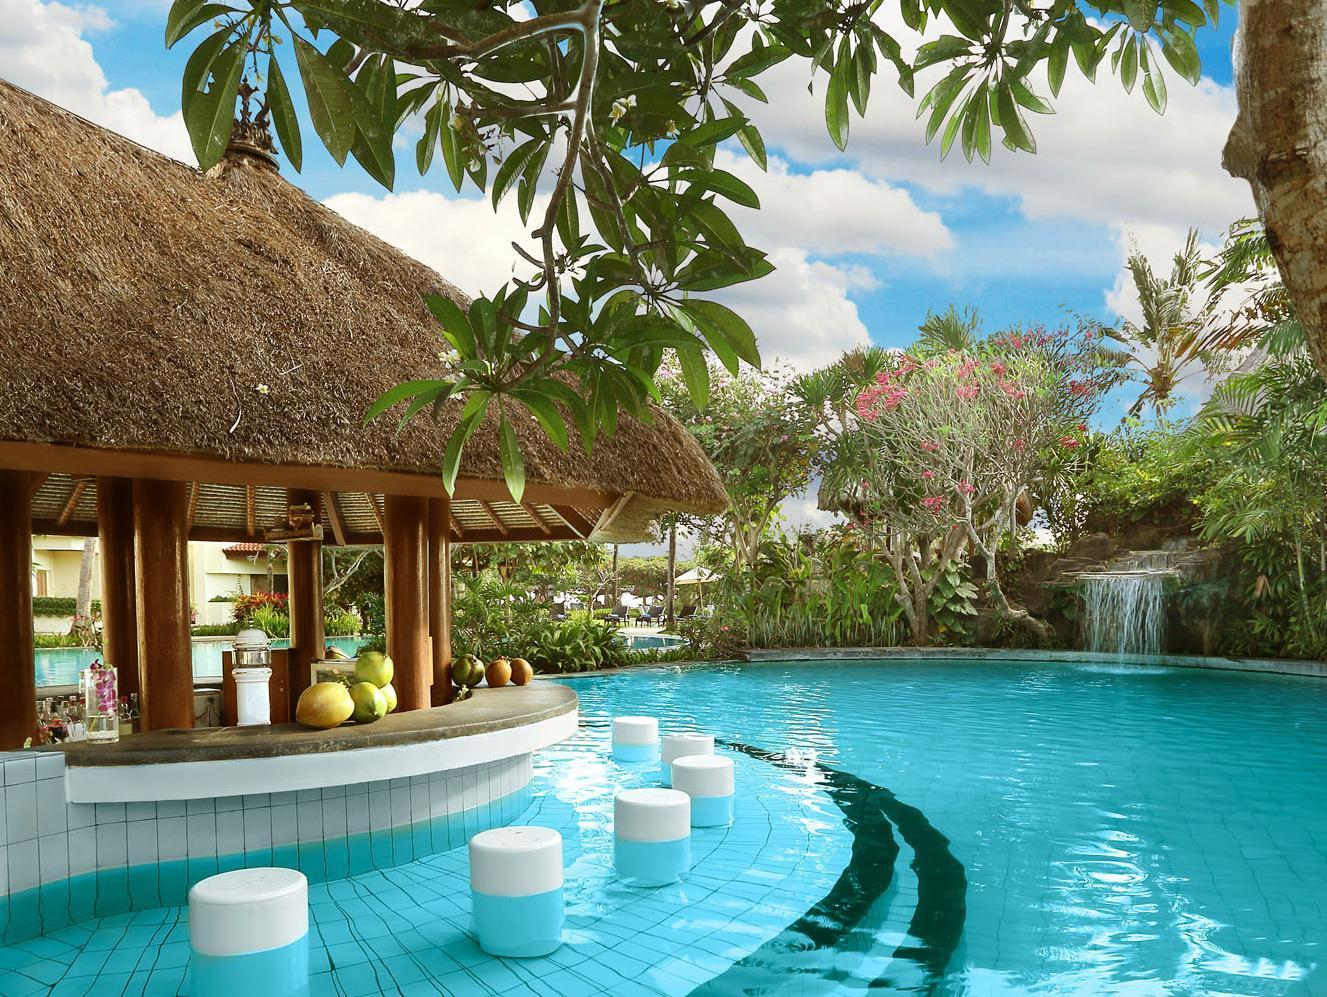 Grand Mirage Resort & Thalasso Bali24